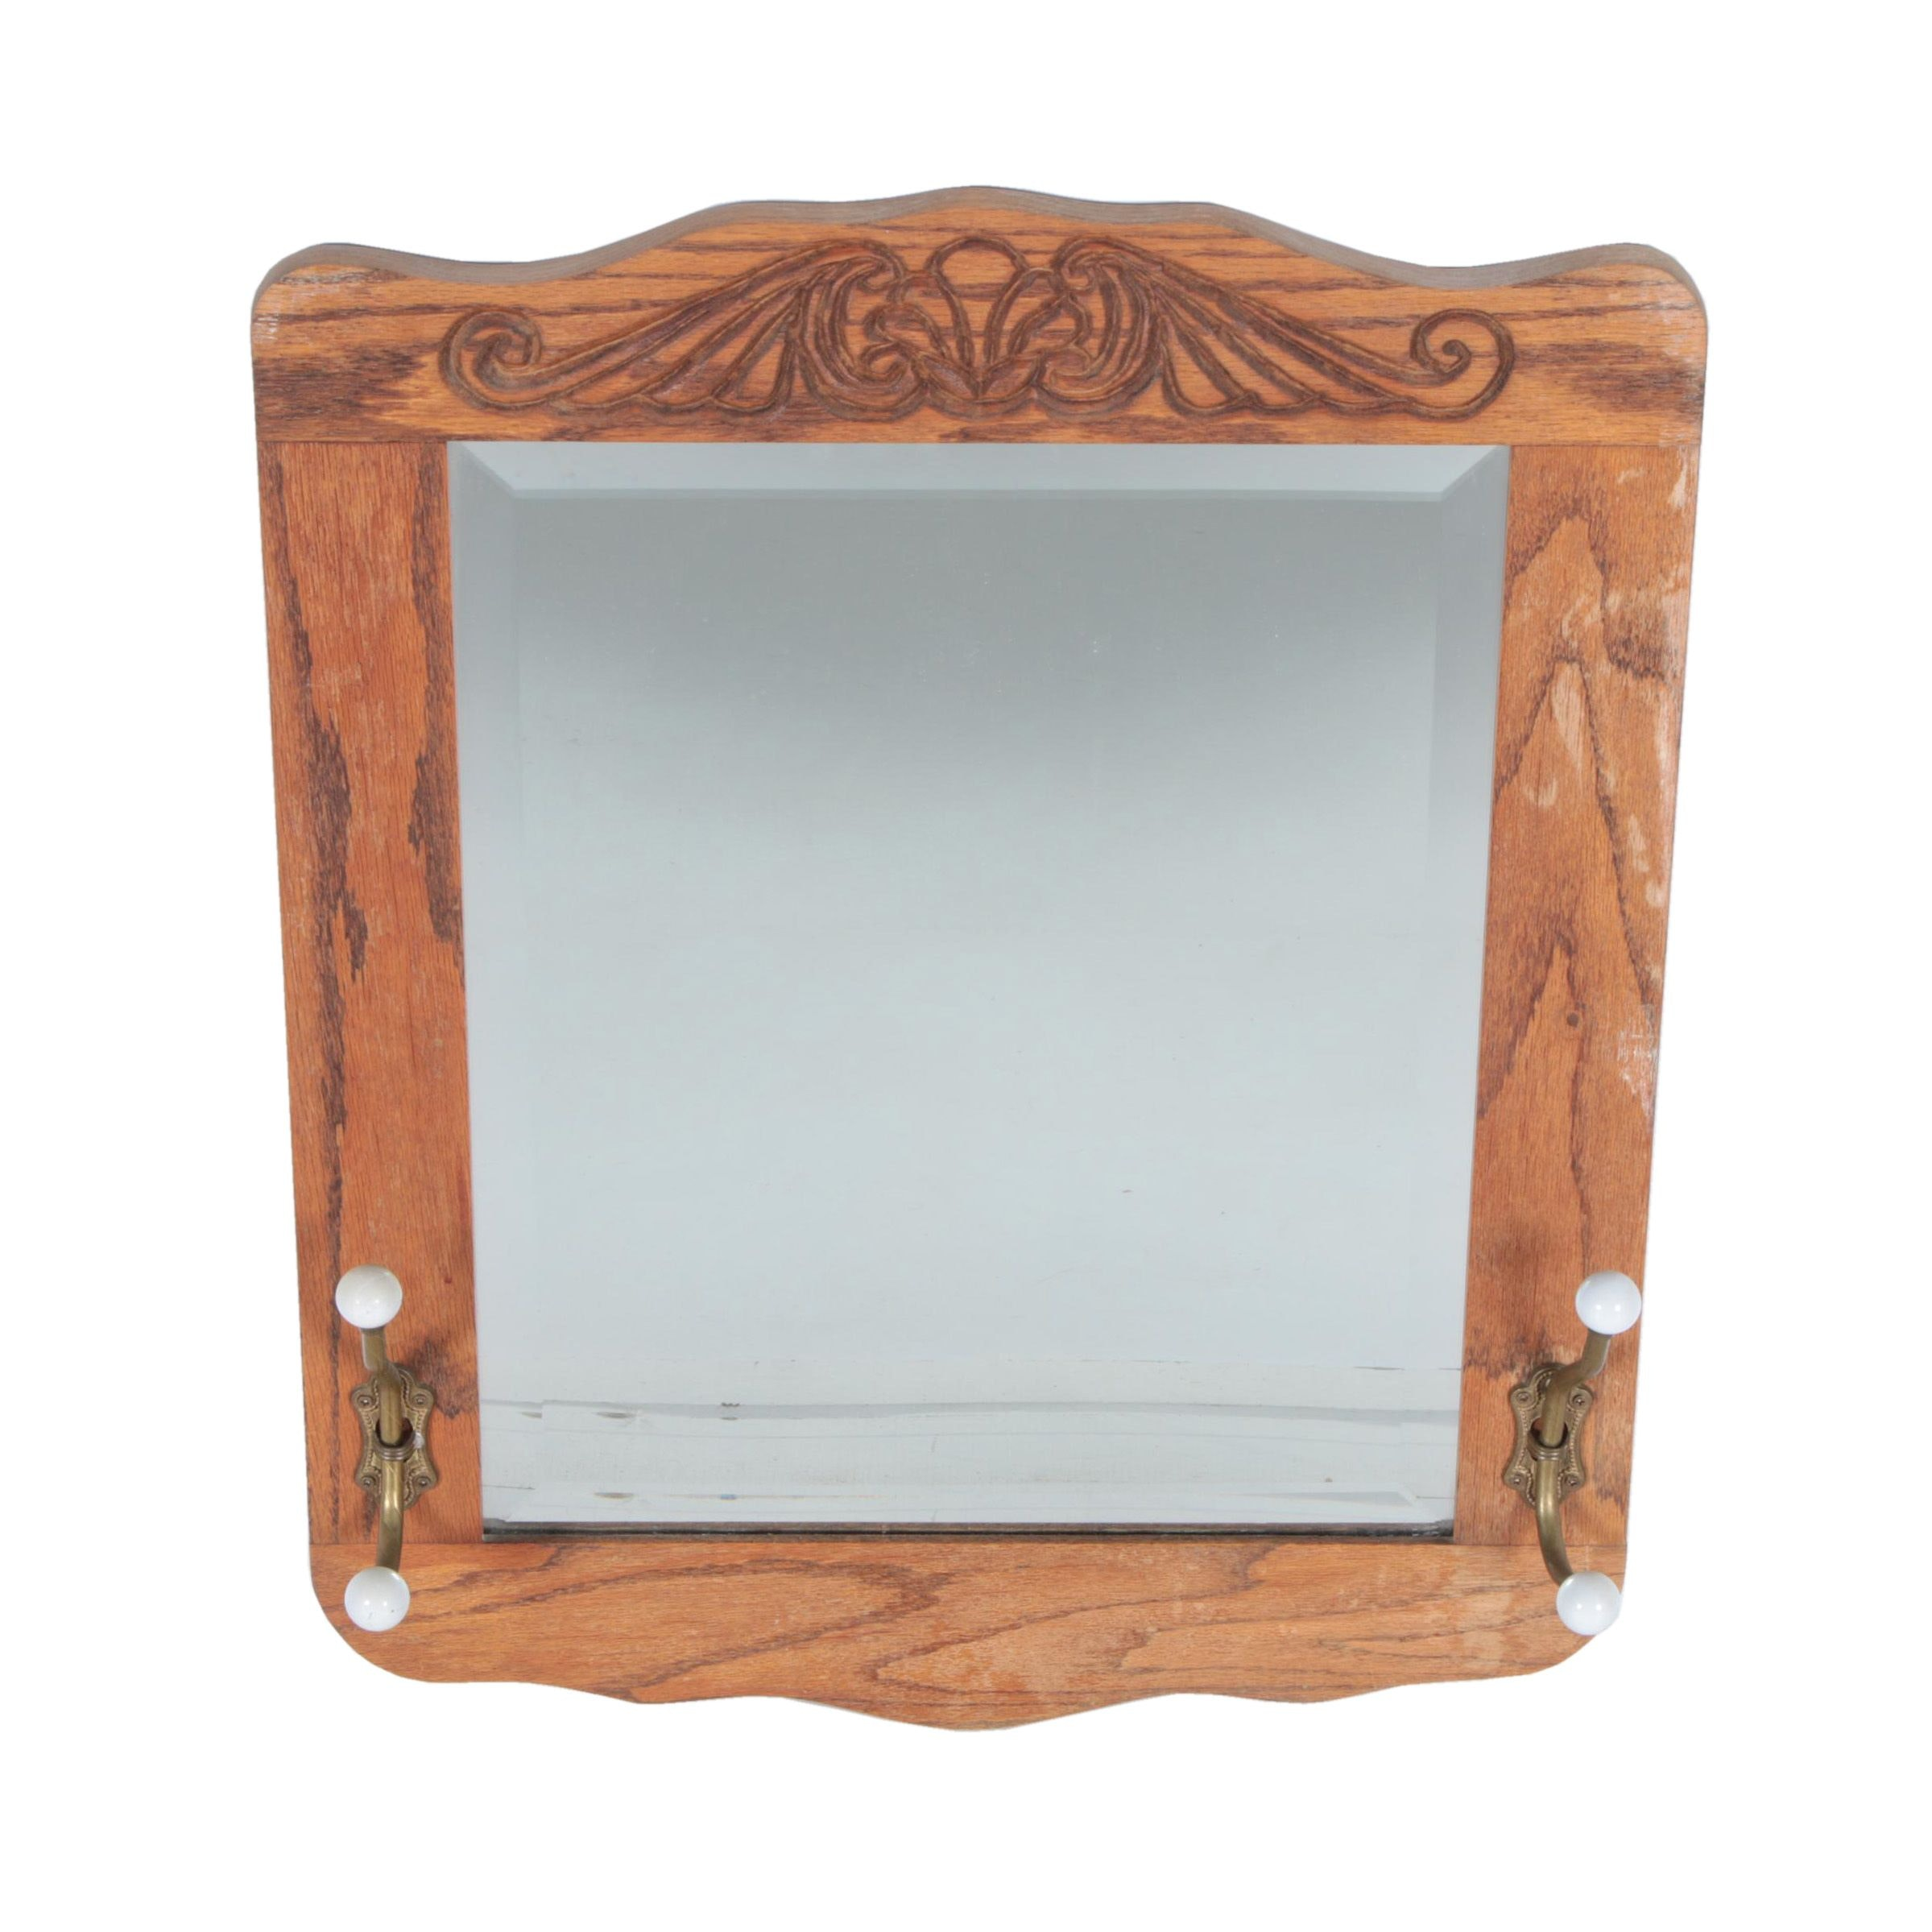 Wall Mirror with Rustic Wood Frame and Hangers